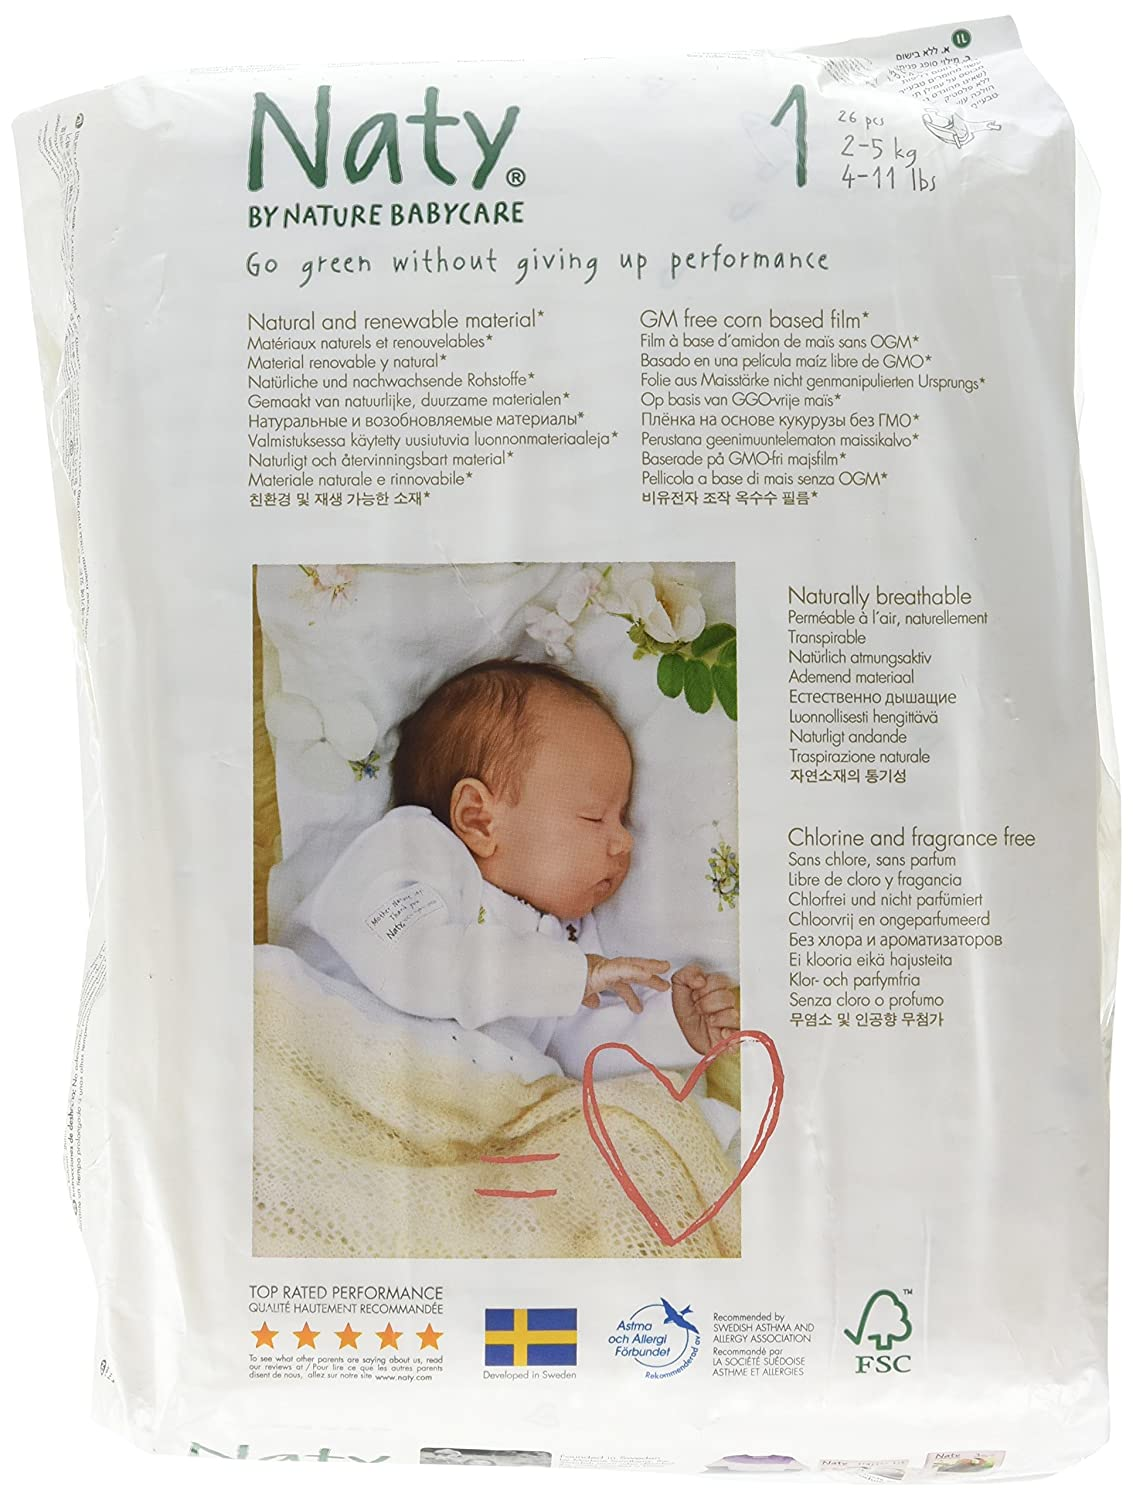 Naty Eco Nappies ? Size 1 Newborn 2-5kg 4-11lb 26pcs Nature Babycare 18591